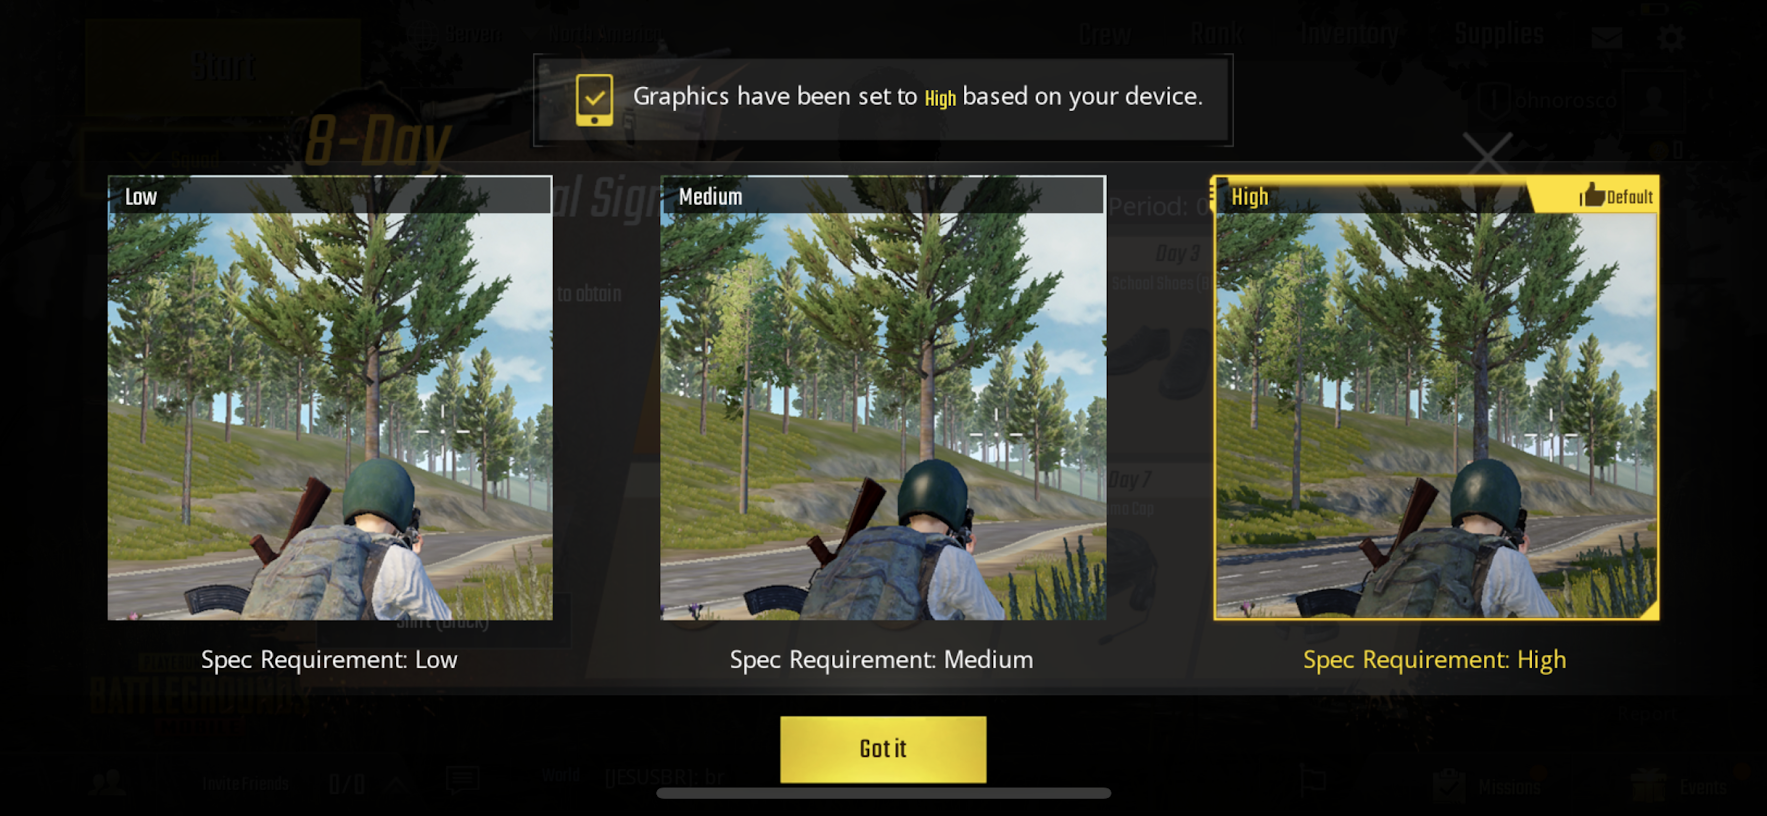 cara main pubg di ipad mini 1